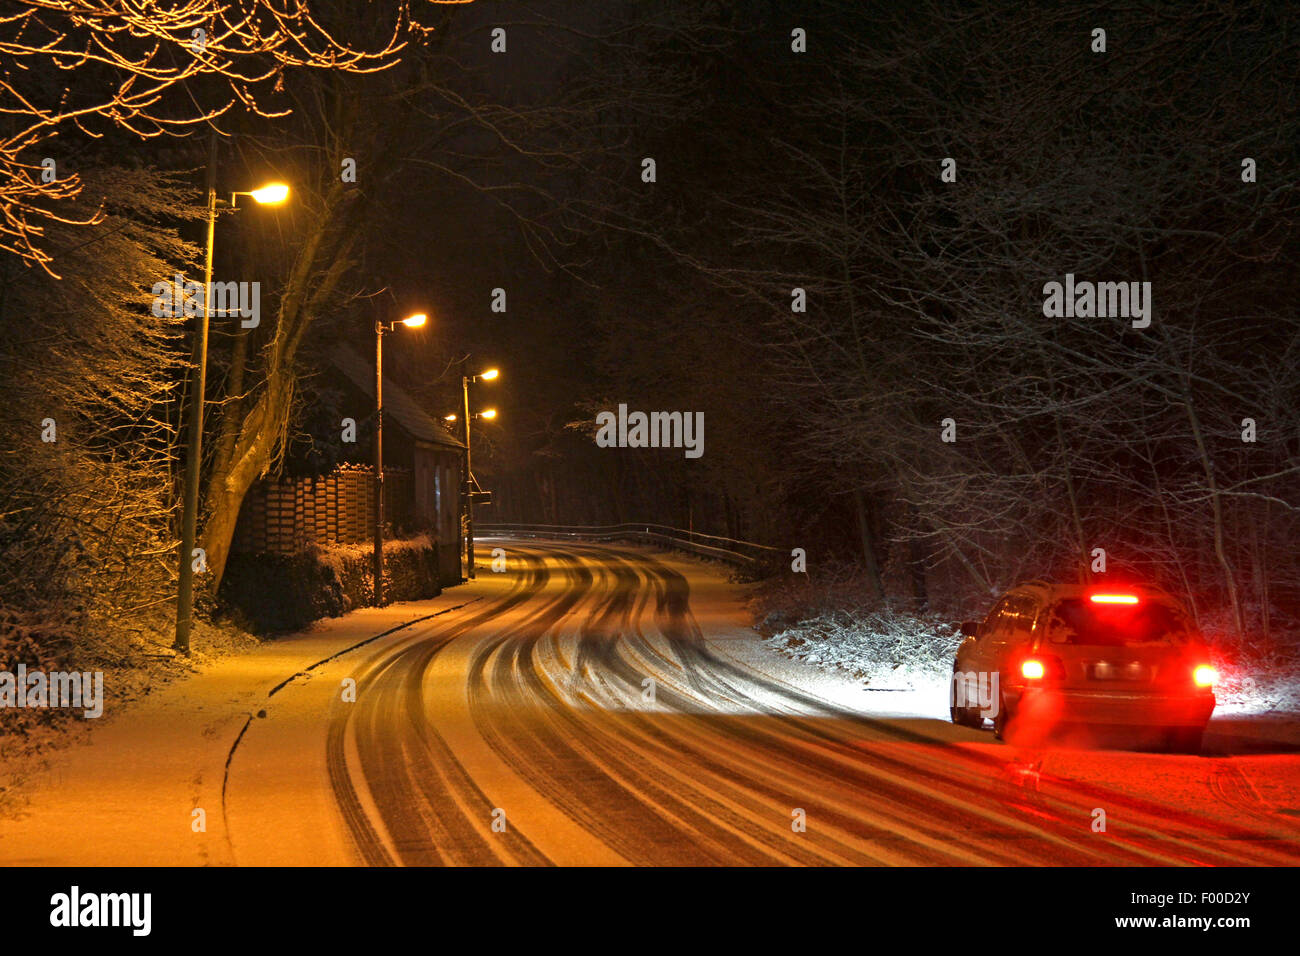 car stopping on slippery street after snowfall, Germany - Stock Image